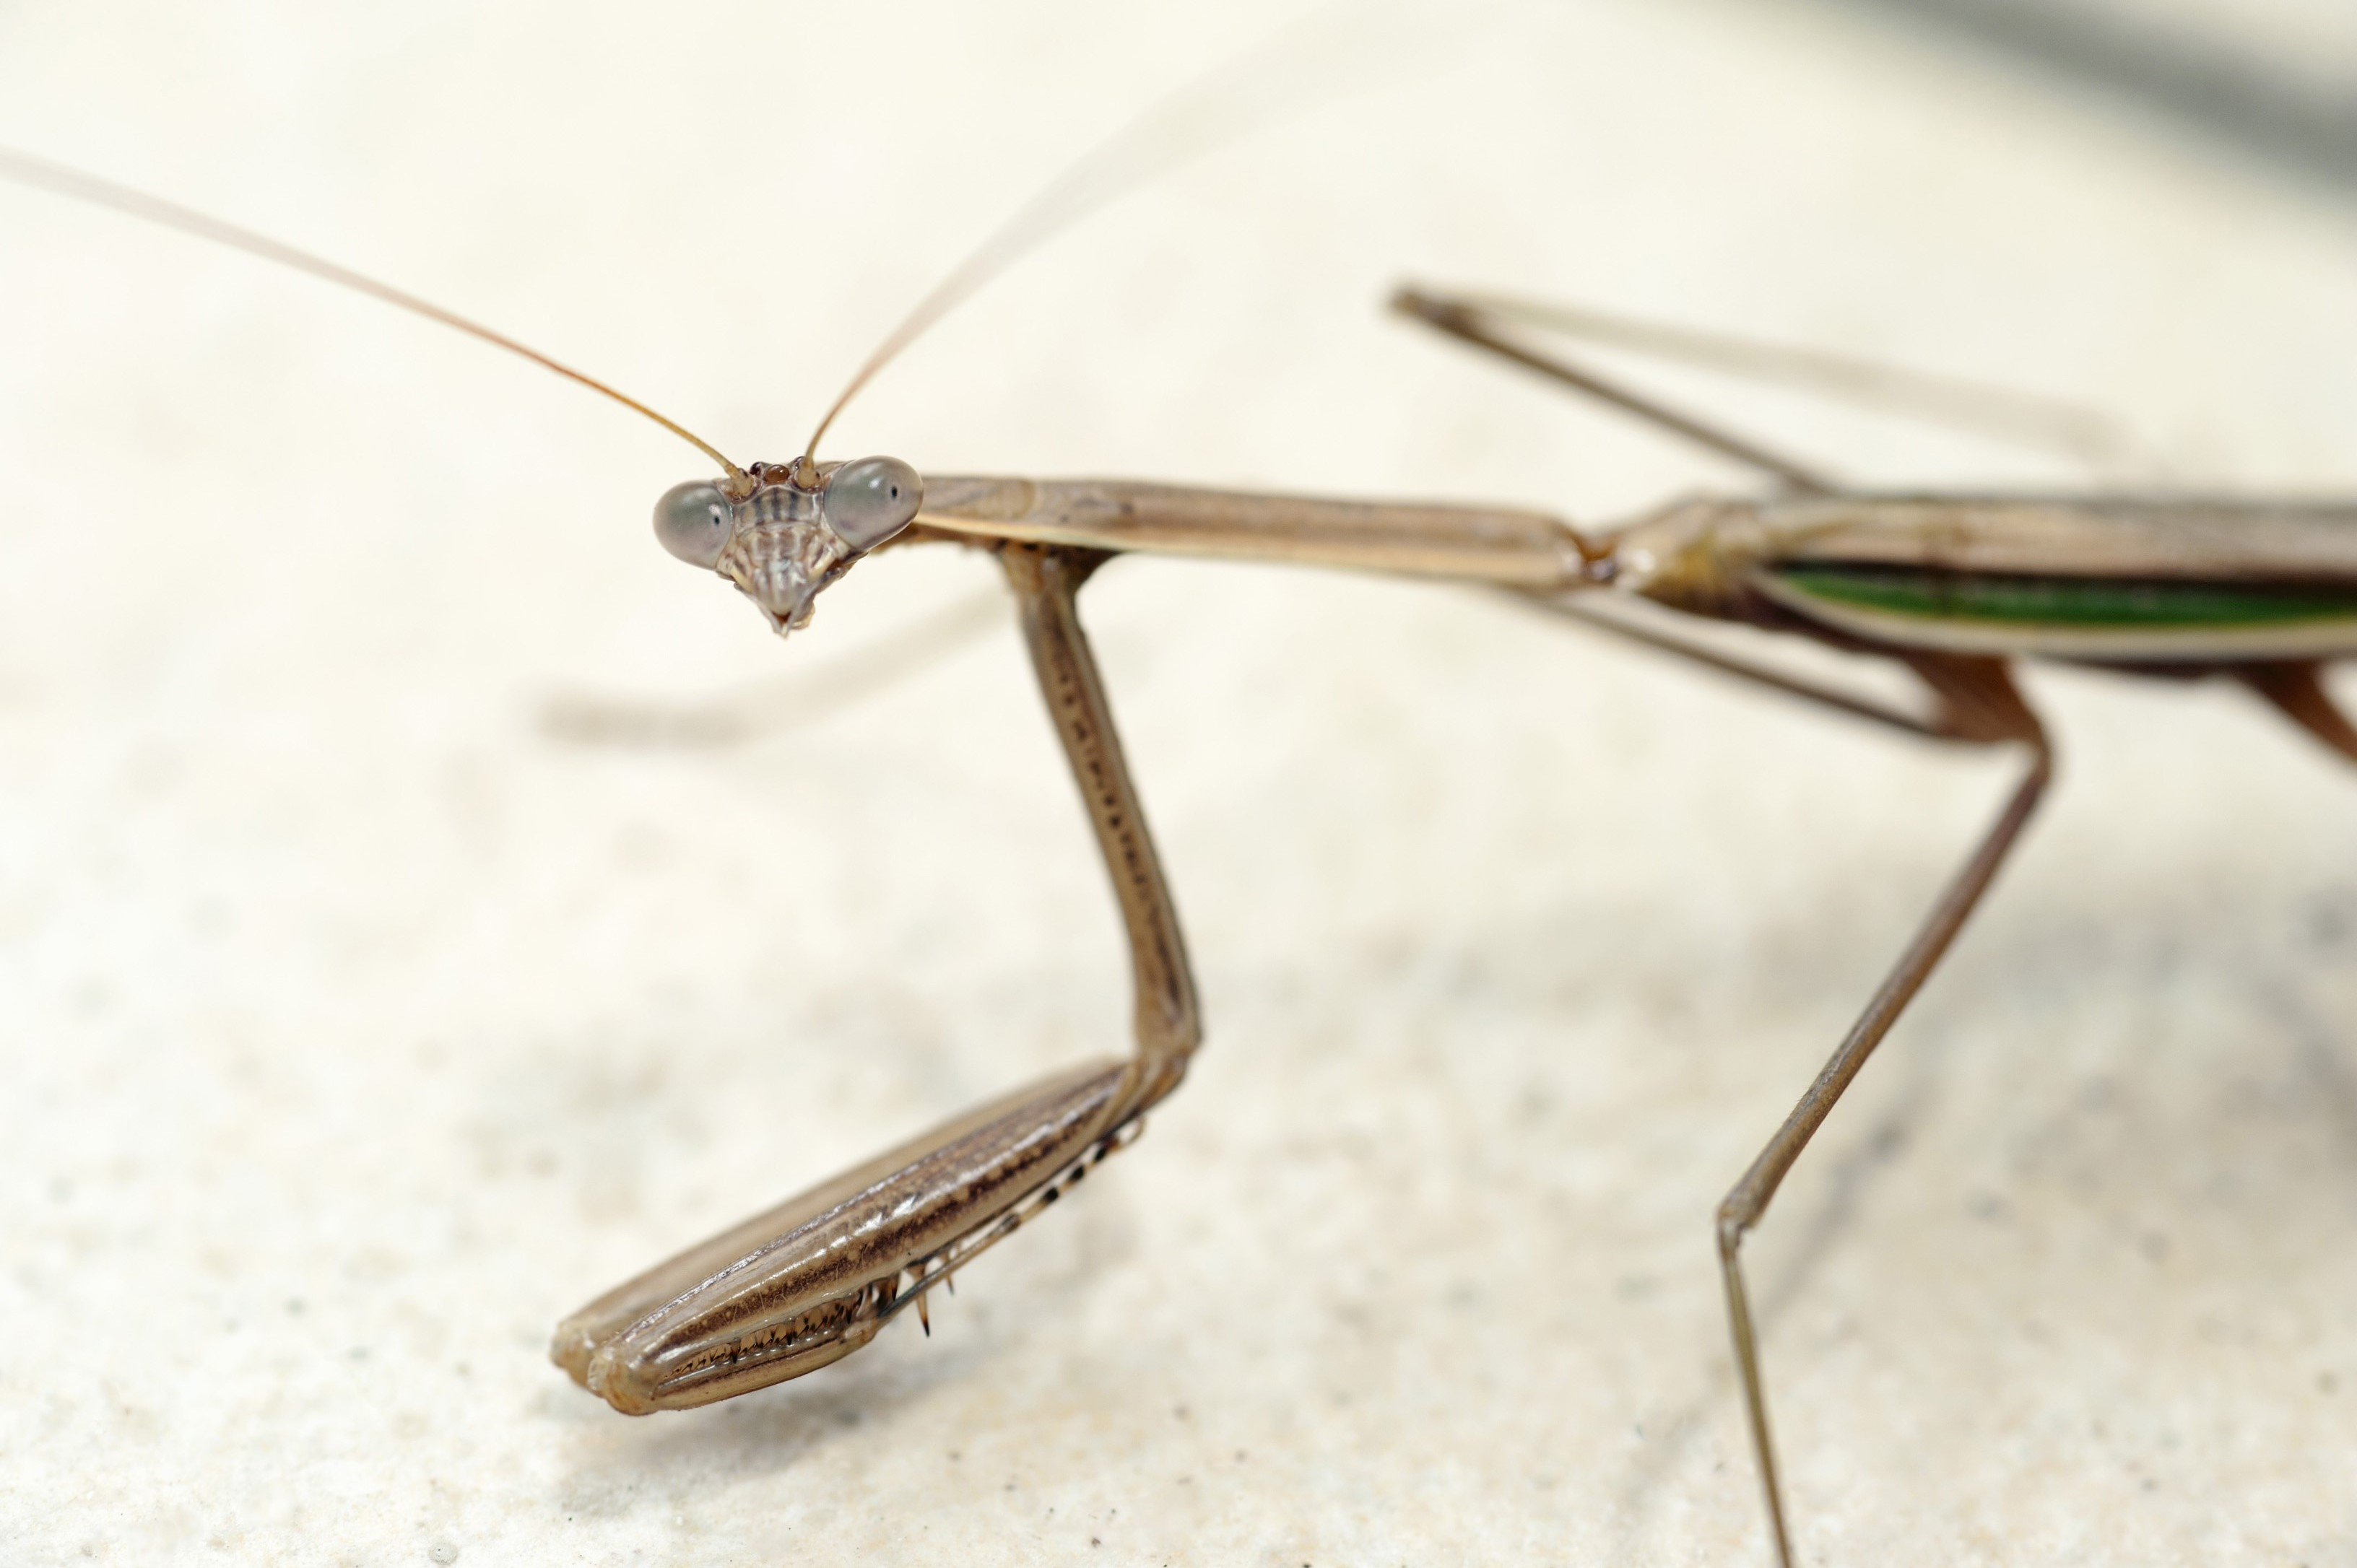 Close up view of a mantis looking at the camera, a predatory carnivorous insect of the family Mantidae found largely in tropical zones